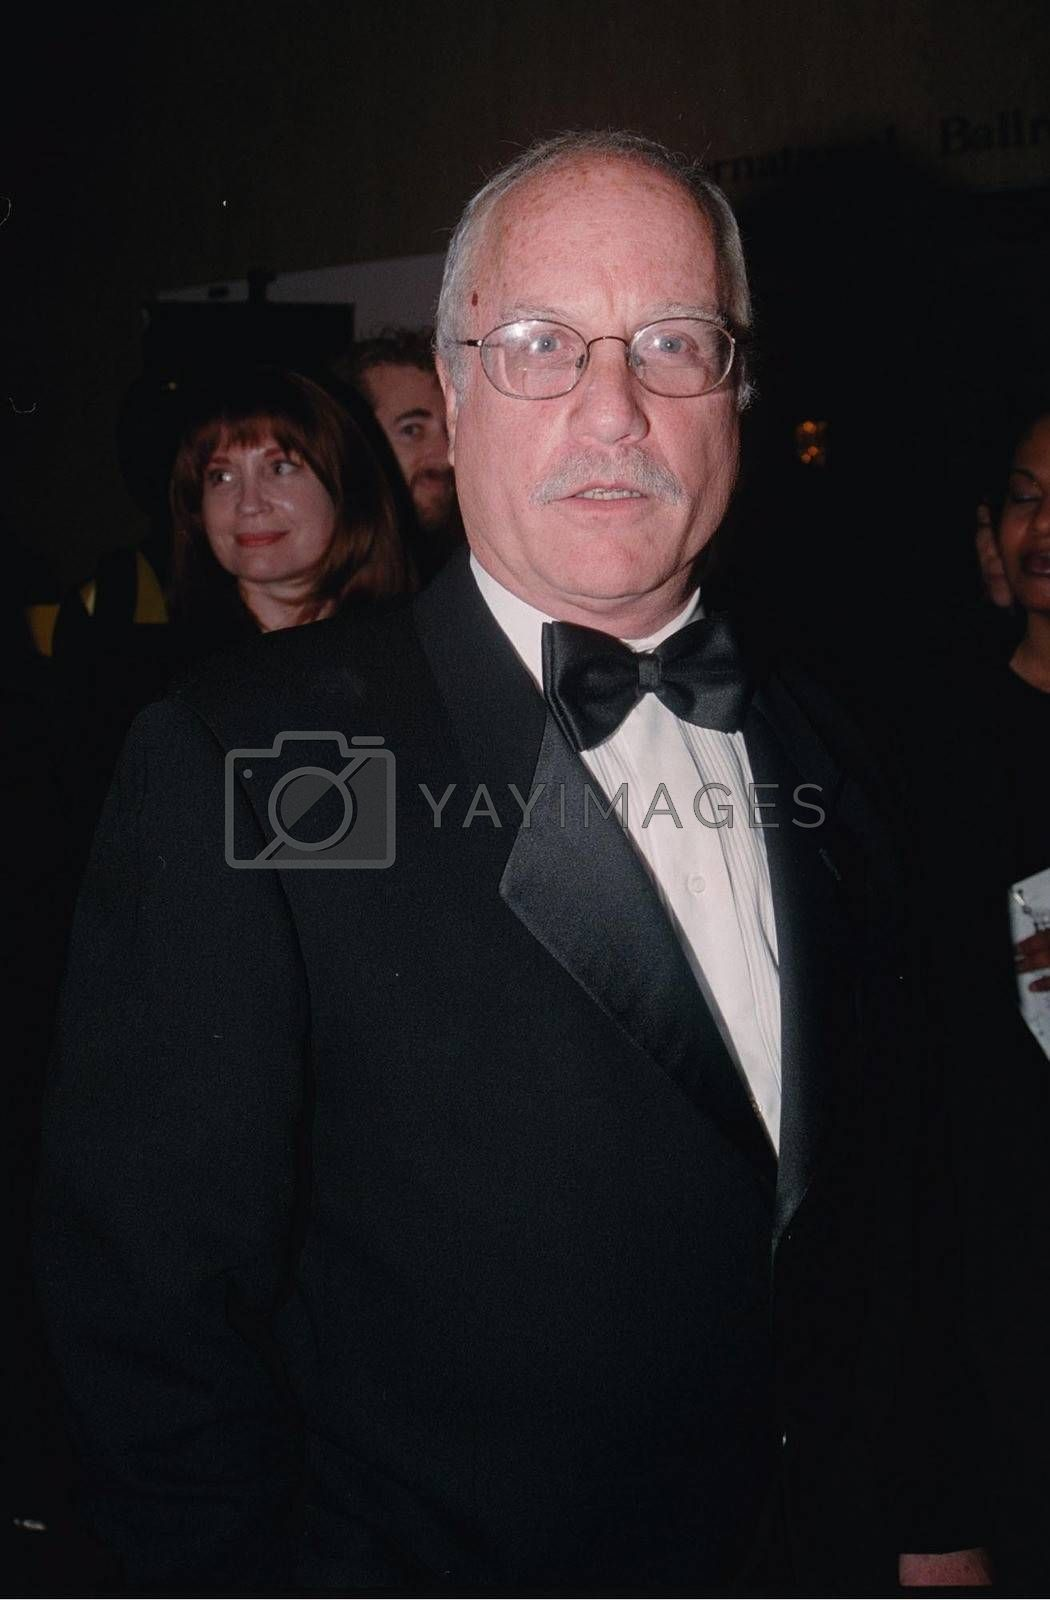 Richard Dreyfus at the Hollywood Film Awards in Beverly Hills. 08-08-00